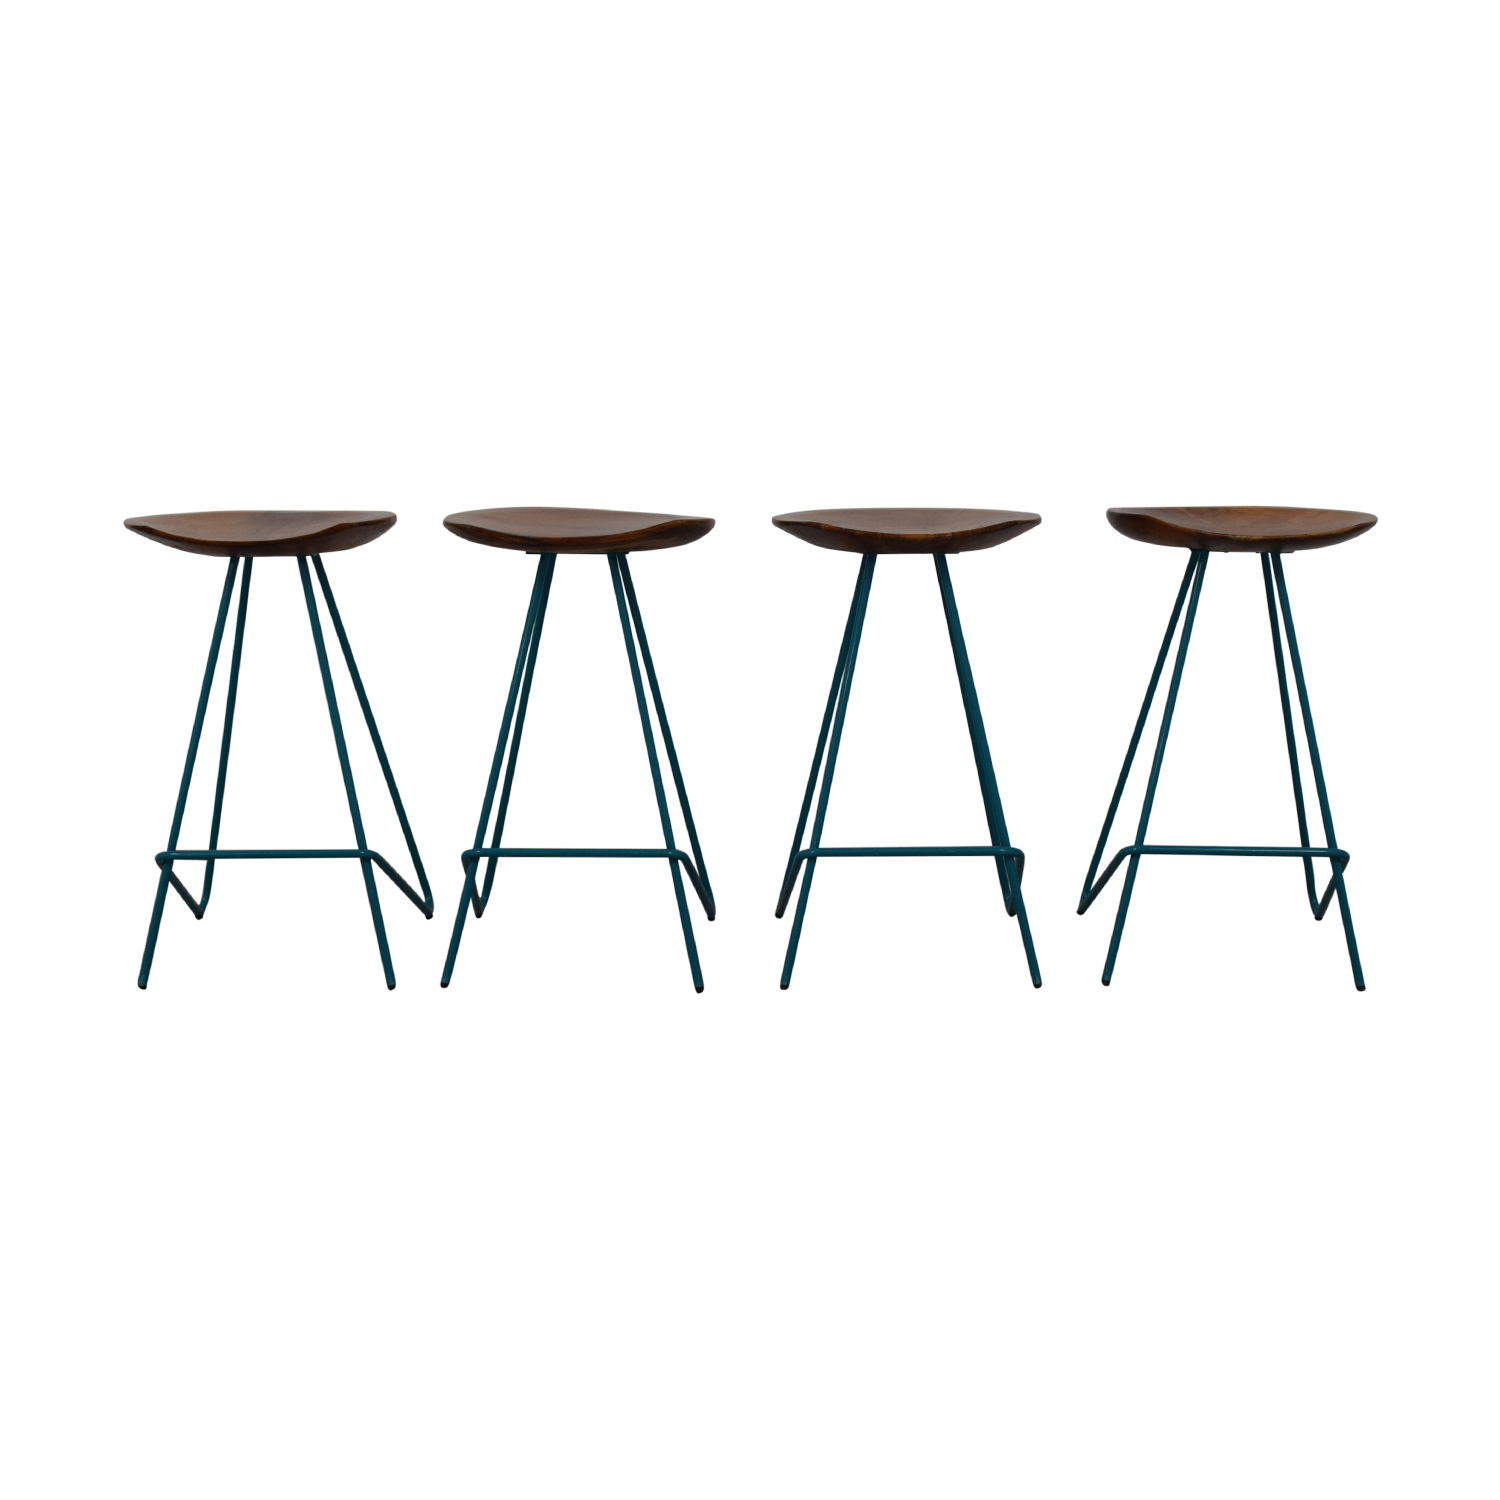 From the Source From the Source Teal Perch Bar Stools nyc